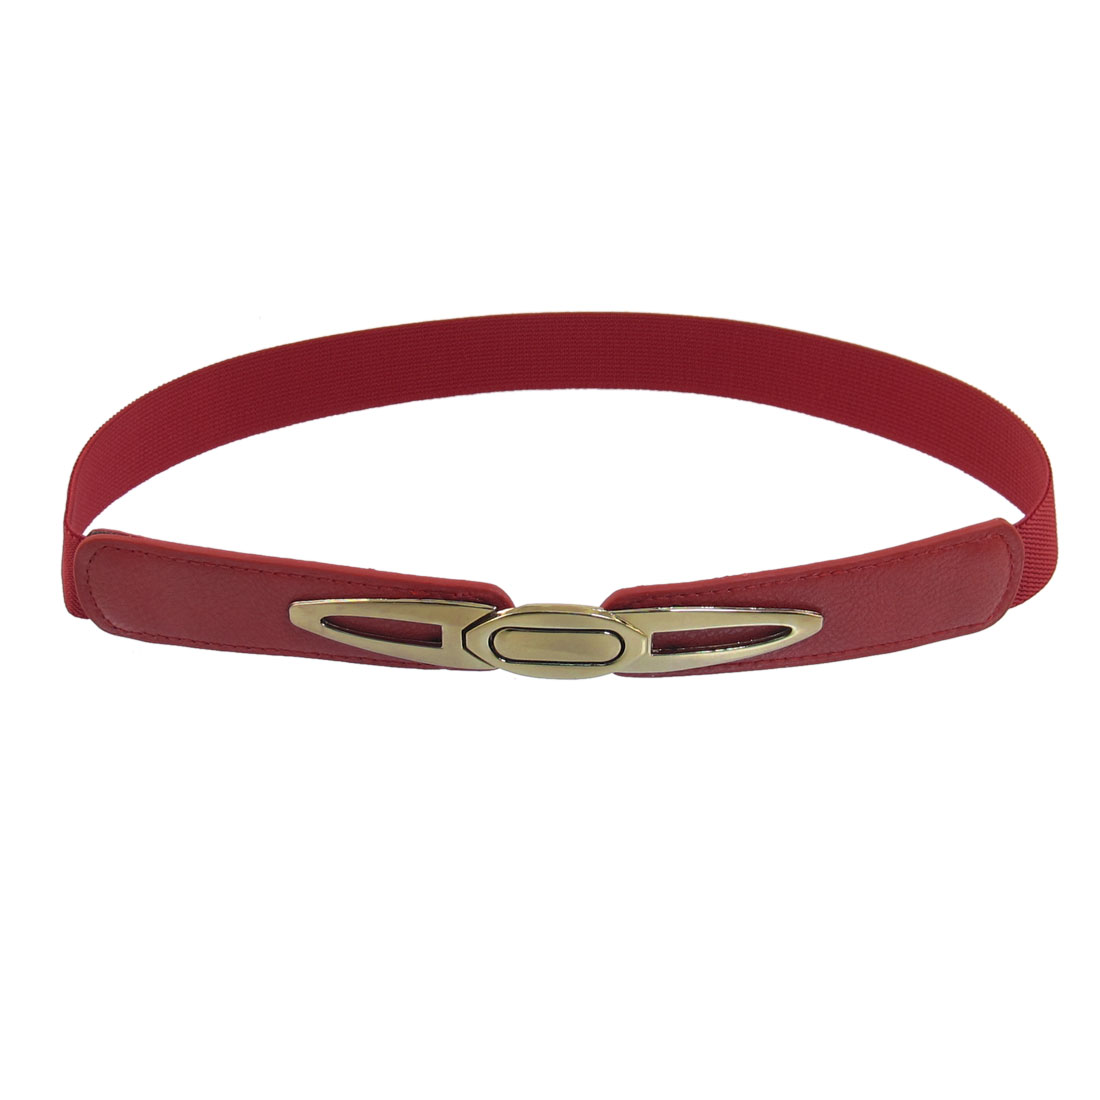 Red Silver Tone Metal Interlocking Buckle Elastic Slim Cinch Waist Belt for Lady